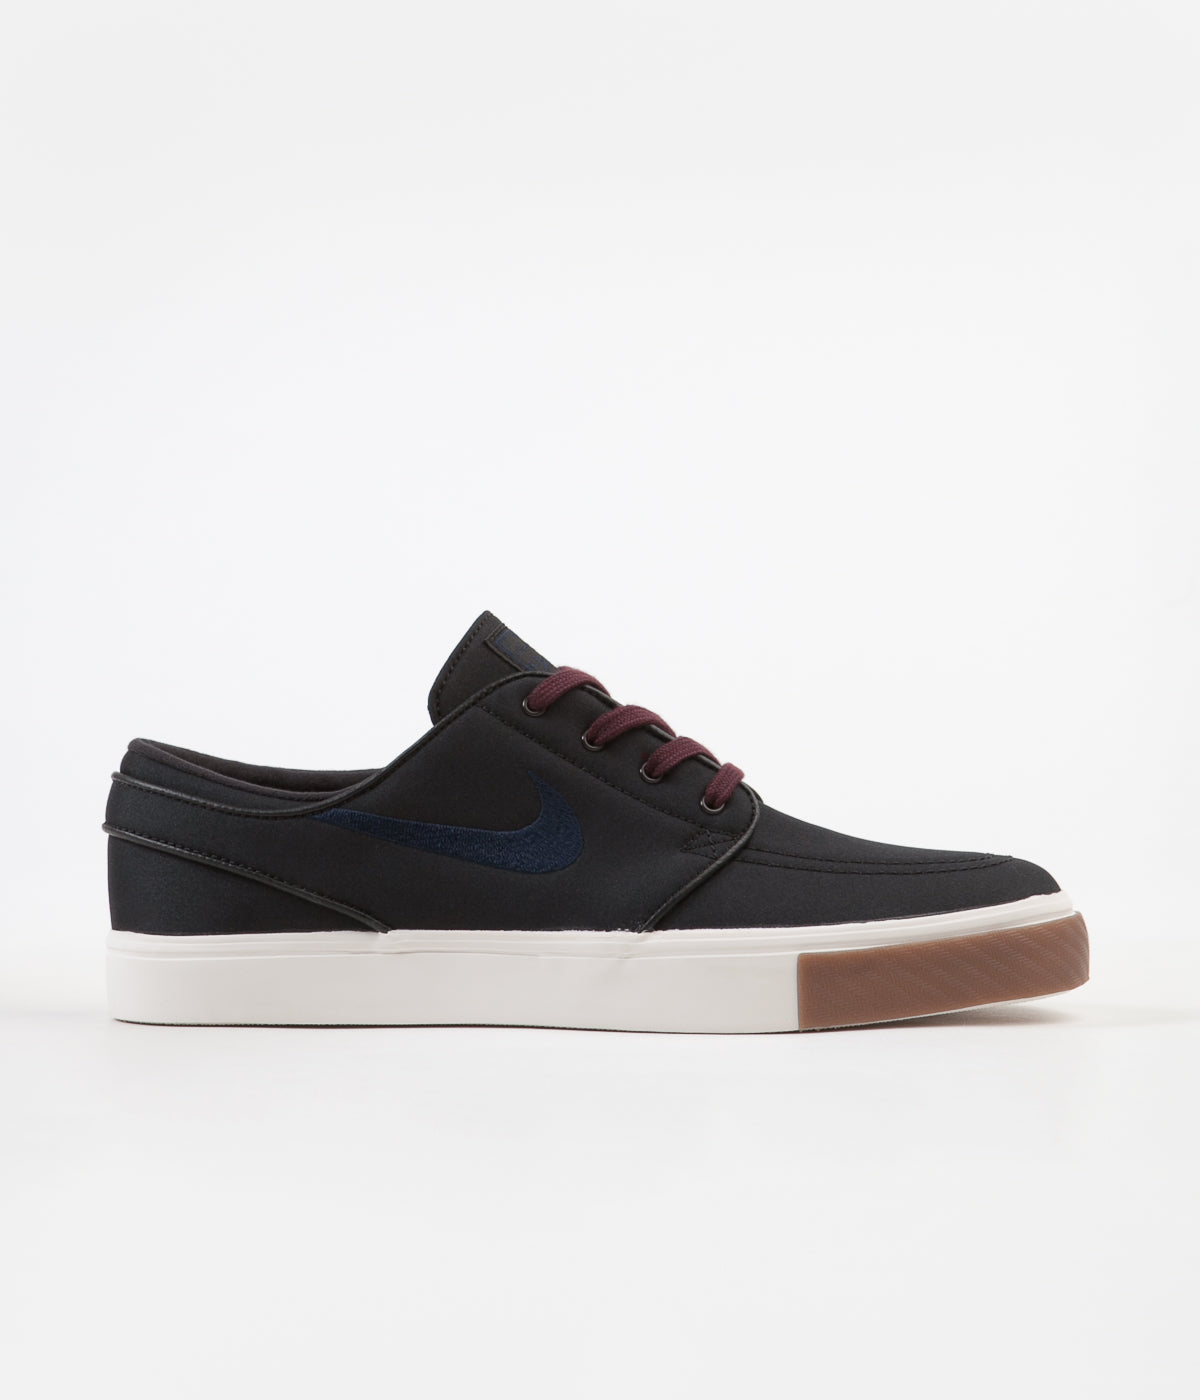 newest 82359 03742 Nike SB Stefan Janoski Shoes - Black   Obsidian - Burgundy Crush